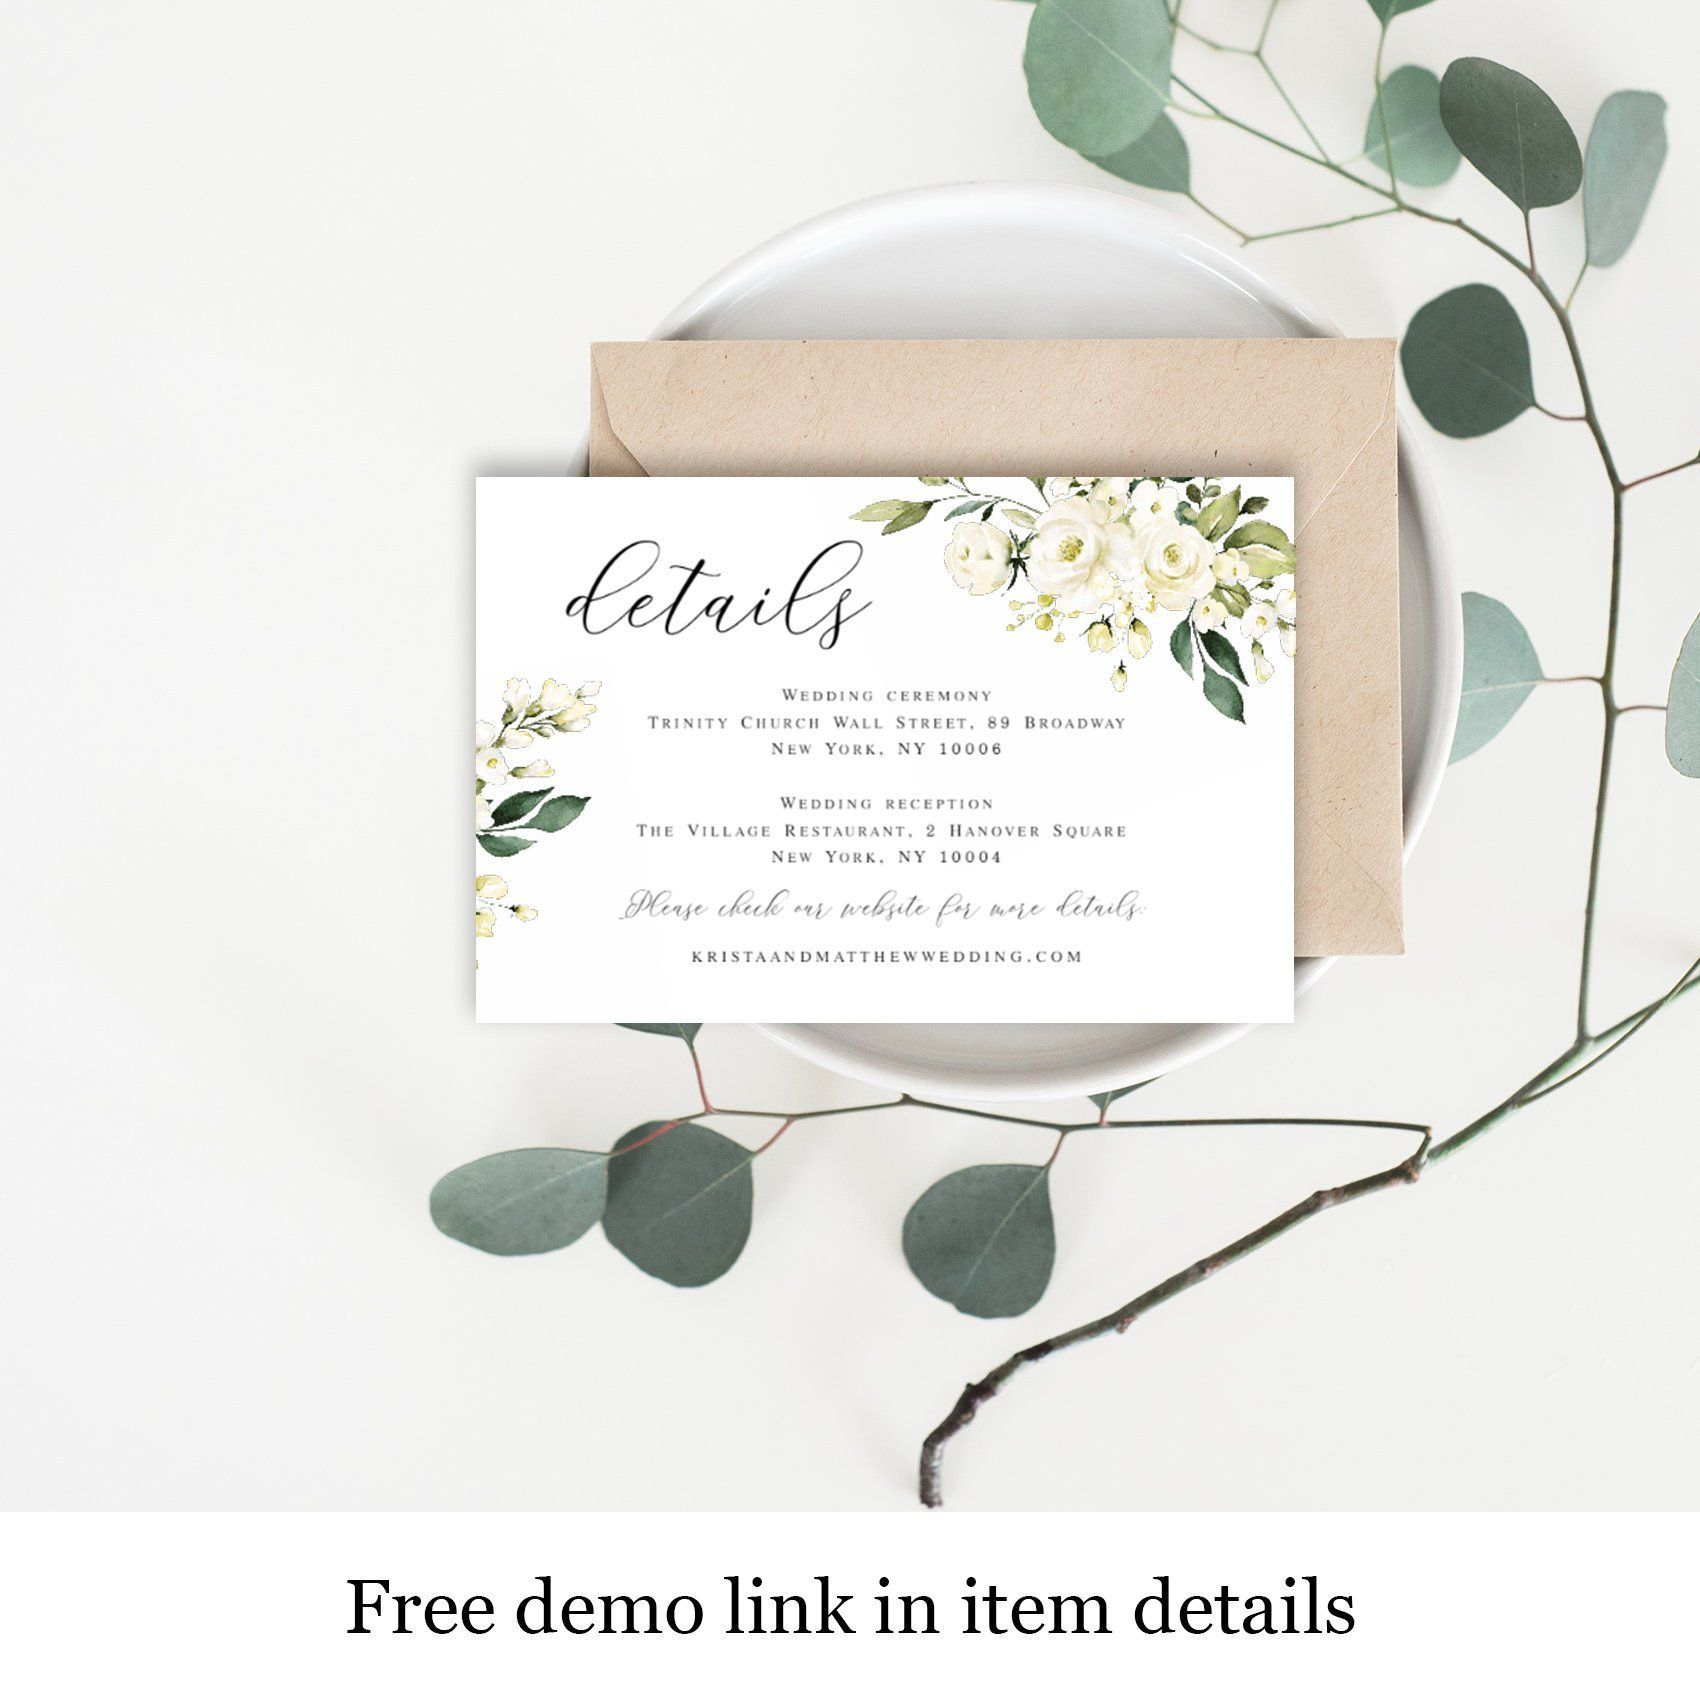 Wedding Invitation Detail Card Template Fully Editable Text Templett Downloadable White Floral Enclosure Insert Cards Roses Leaves Vmt4116 Weddingtips Weddin